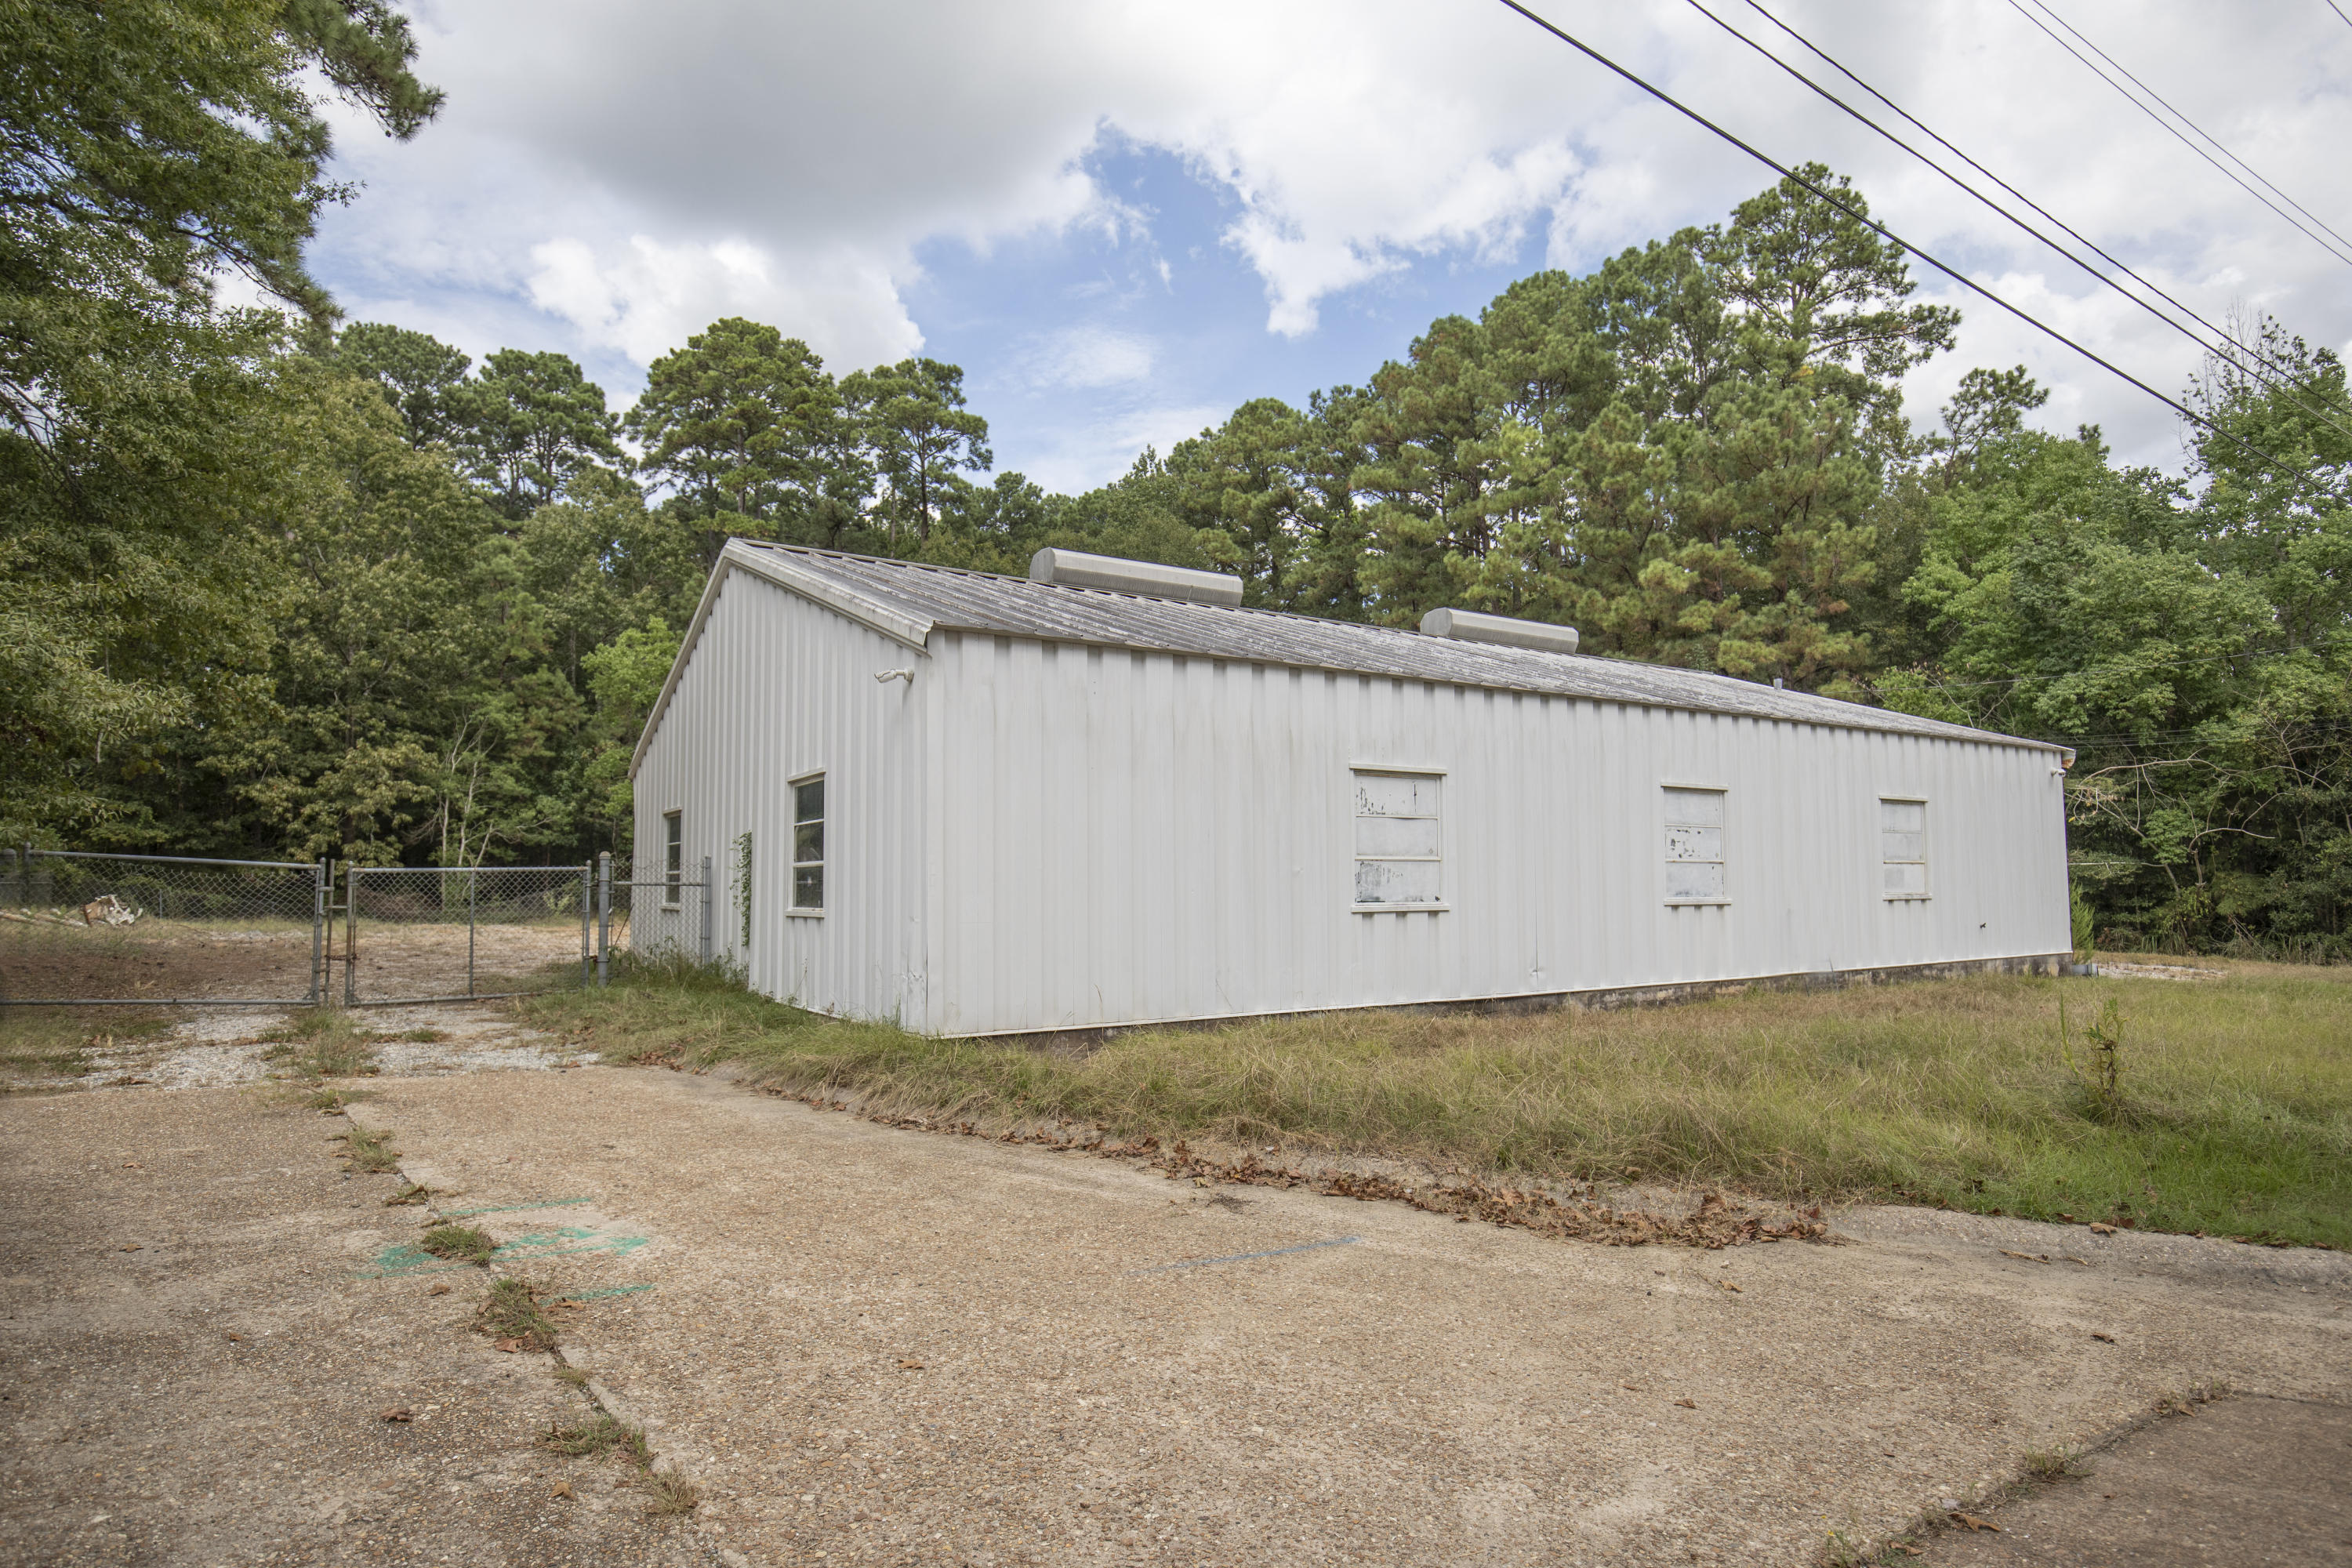 Leesville commercial property for sale, 308 Concord Ave, Leesville LA - $177,300